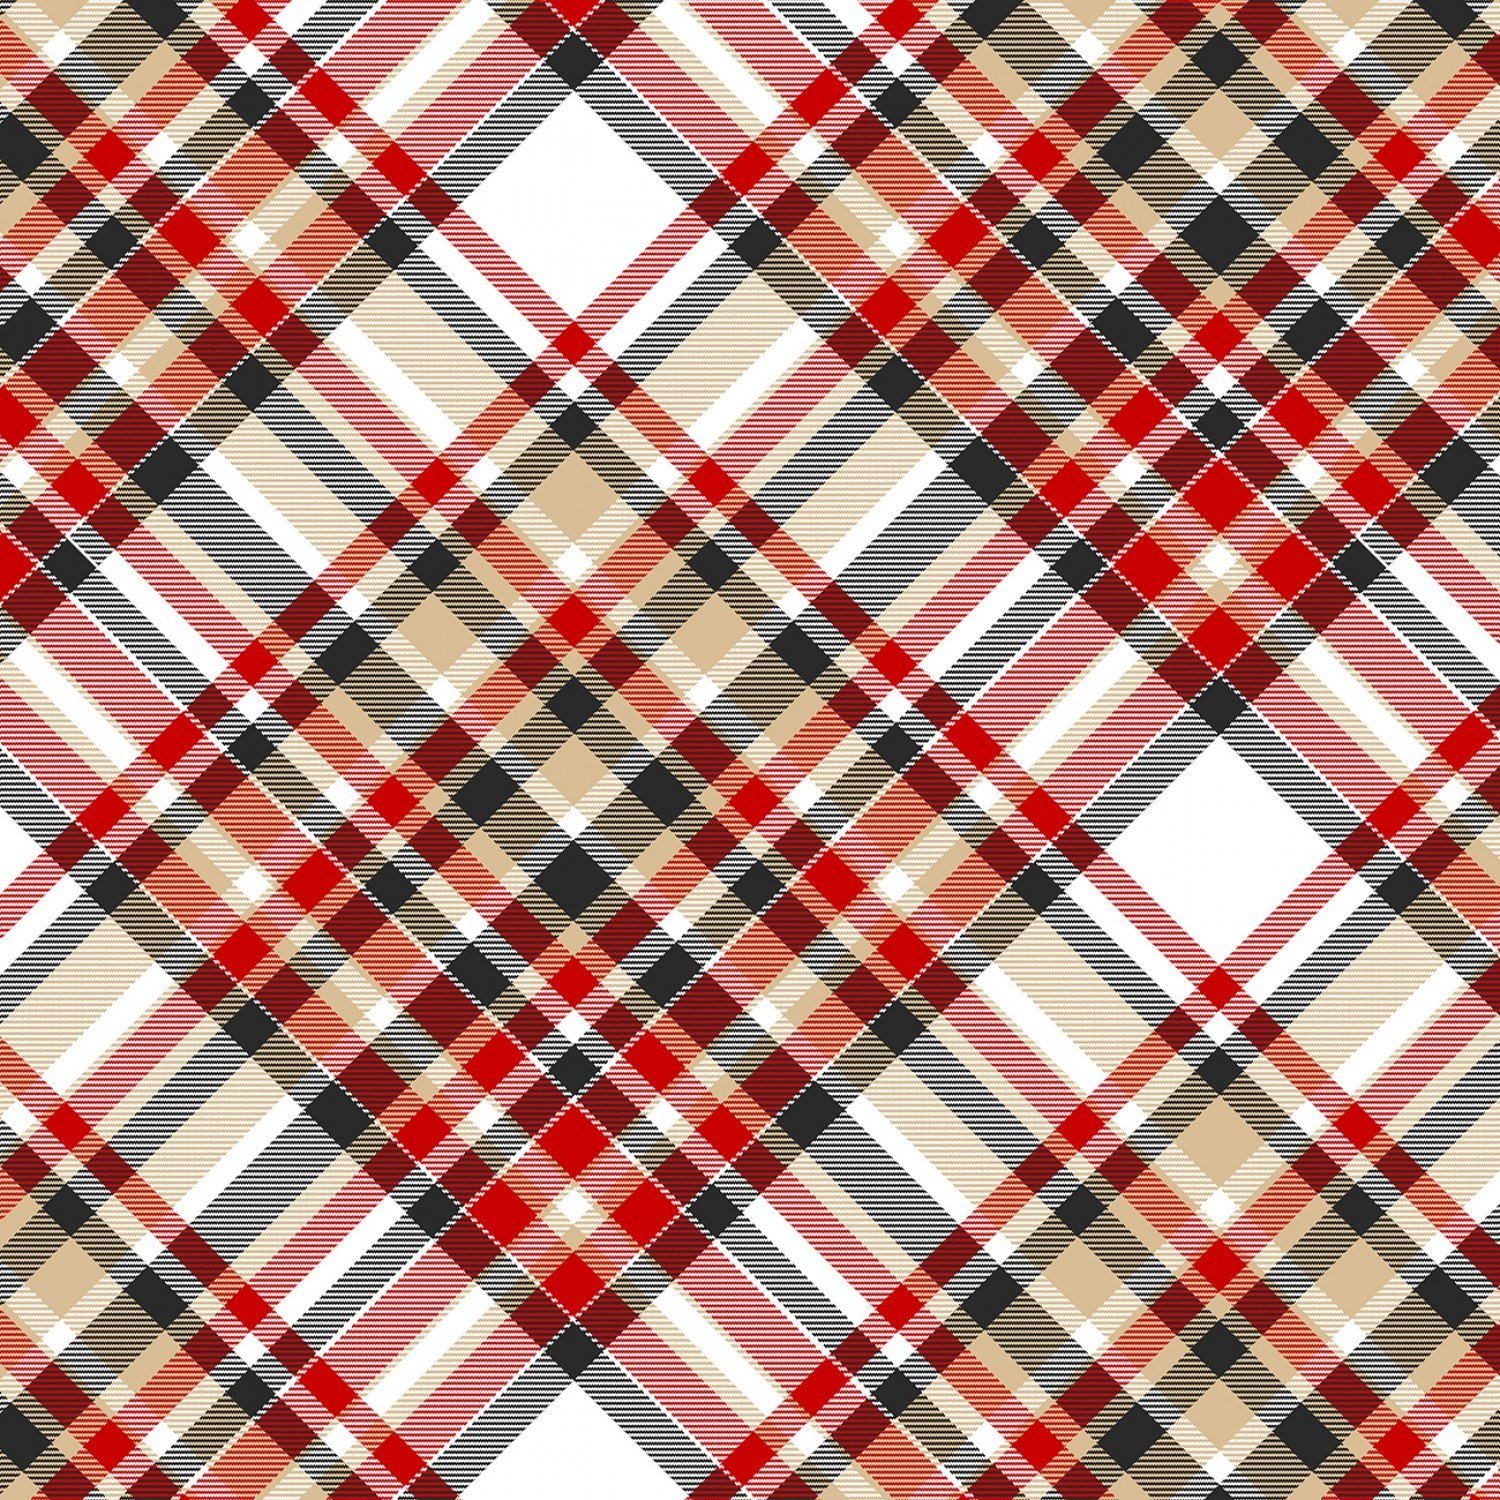 Red/Beige/Black Plaid - 9276 89